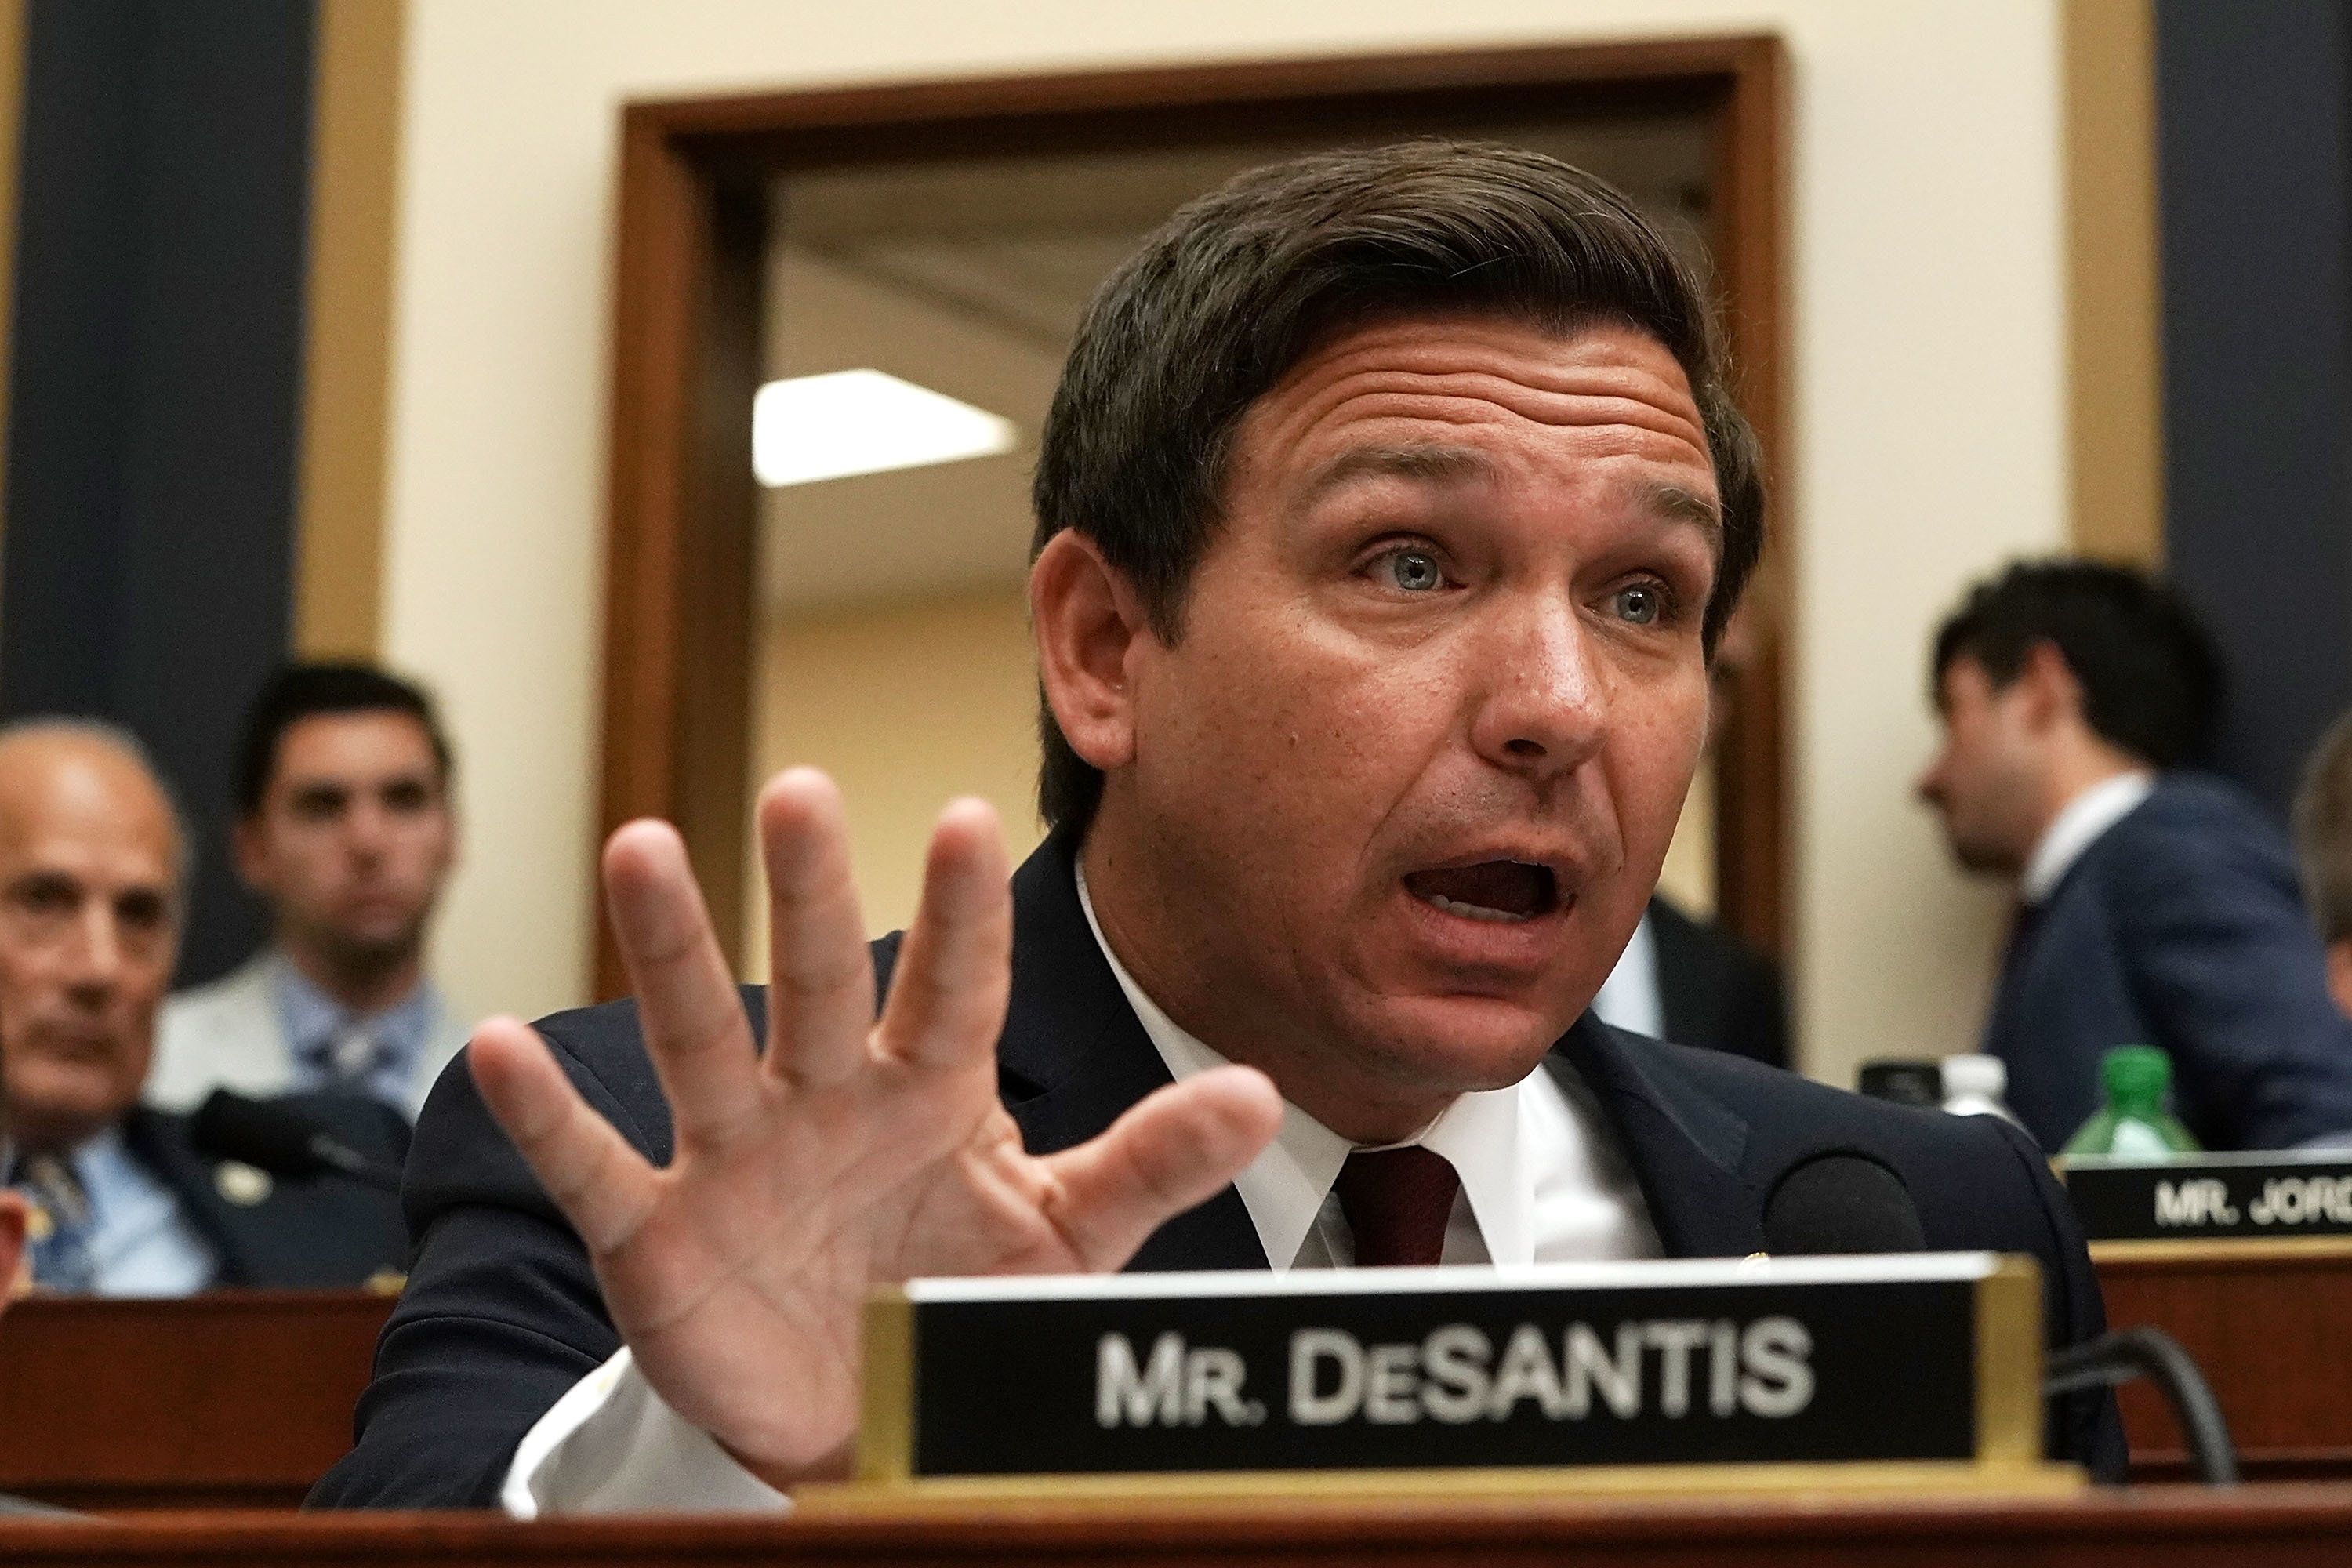 WASHINGTON, DC - JUNE 28:  U.S. Rep. Ron DeSantis (R-FL) speaks during a hearing before the House Judiciary Committee June 28, 2018 on Capitol Hill in Washington, DC. While scheduled to discuss the Justice Department Inspector general report released this month on the FBI's handling of the Hillary Clinton email investigation, Republicans were expected to use the opportunity to press for release of documents subpoenaed by the committee that detail FBI actions in 2016.  (Photo by Alex Wong/Getty Images)